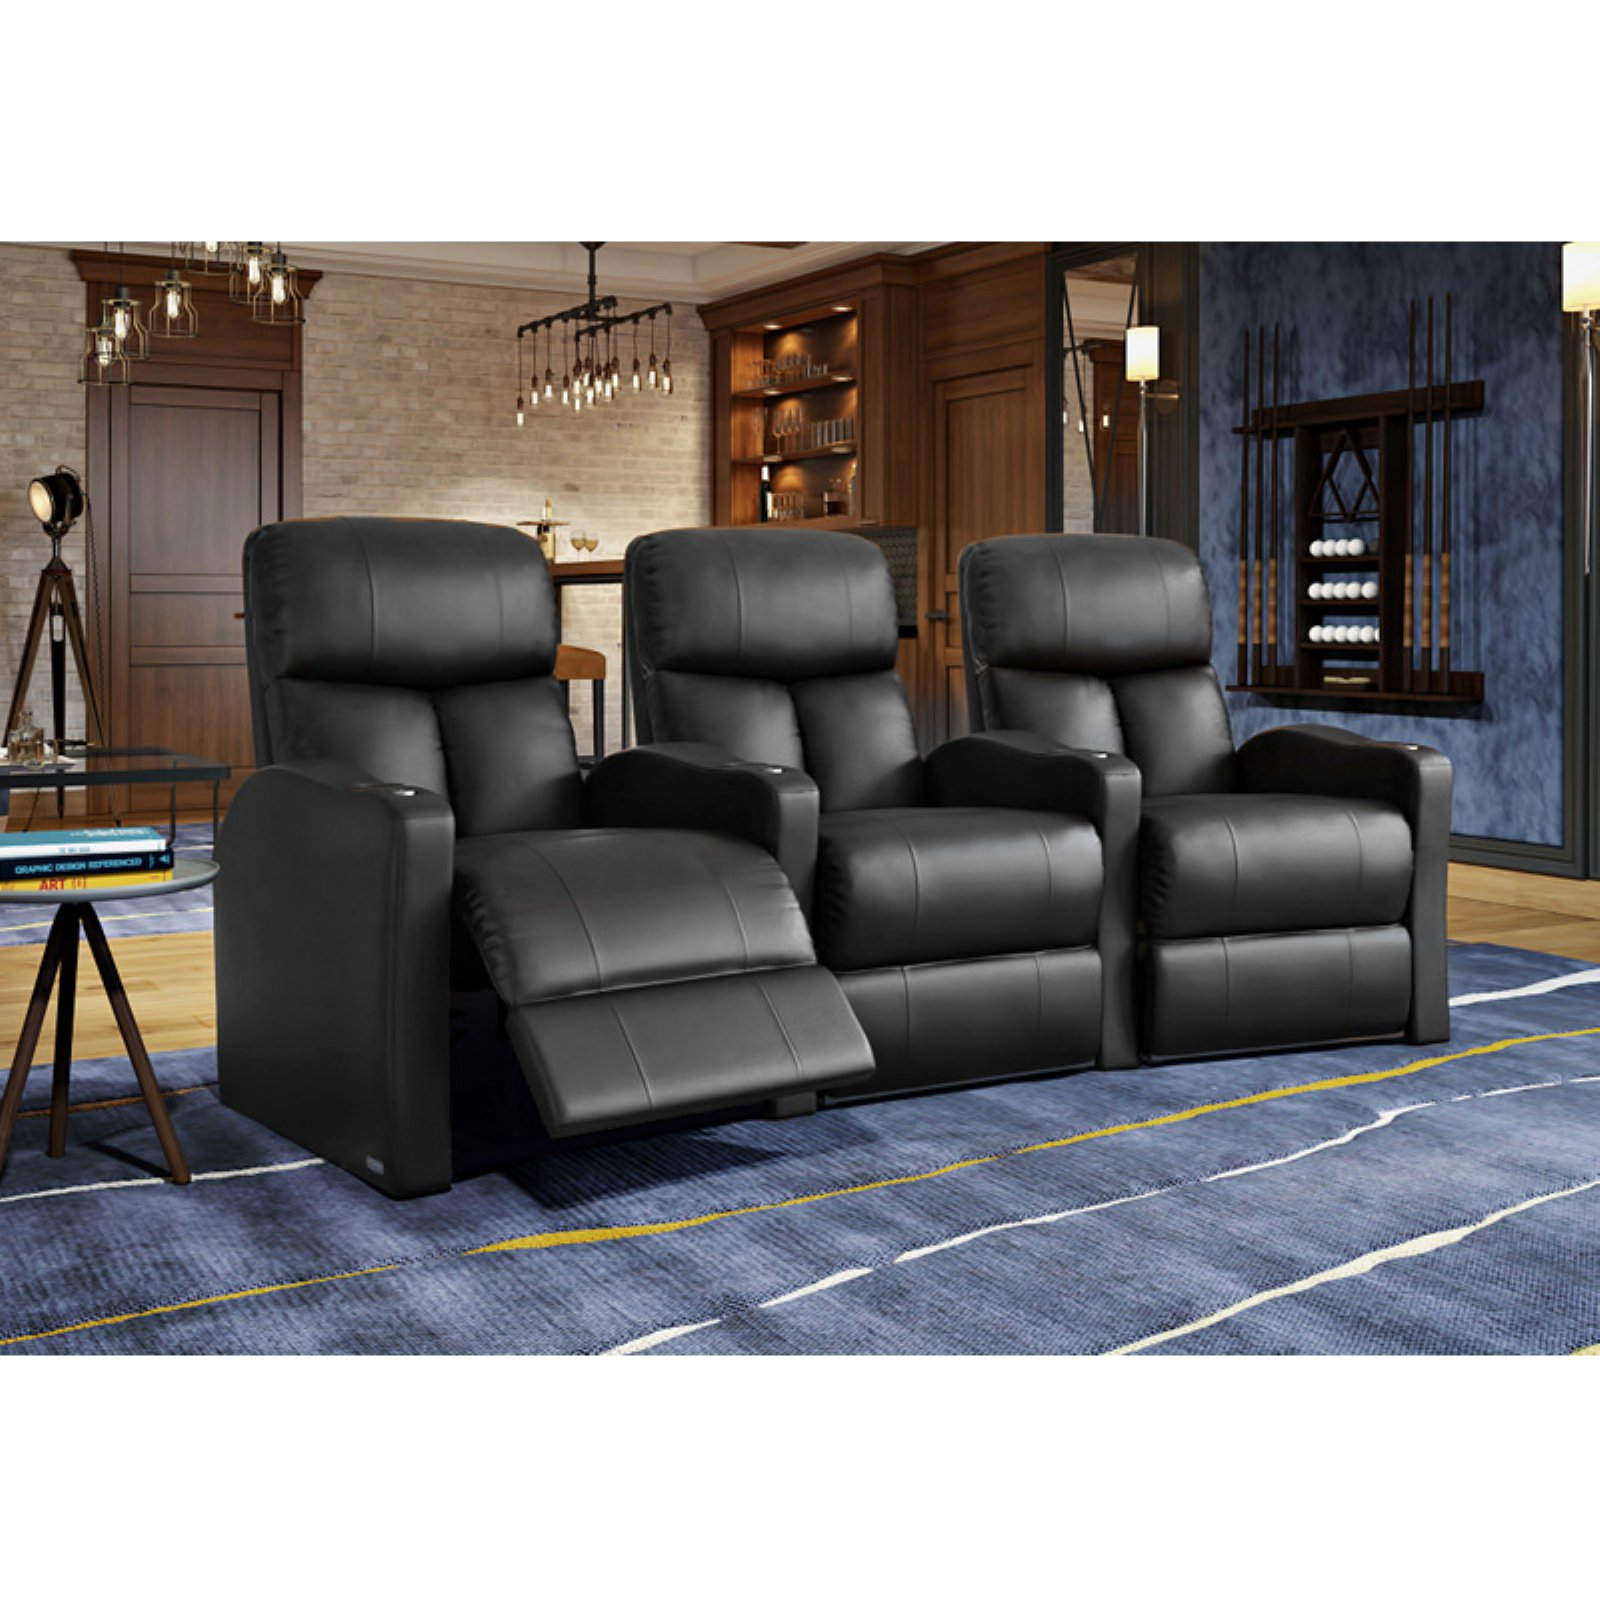 Octane Bolt XS400 3 Seater Curved Power Recline Home Theater Seating